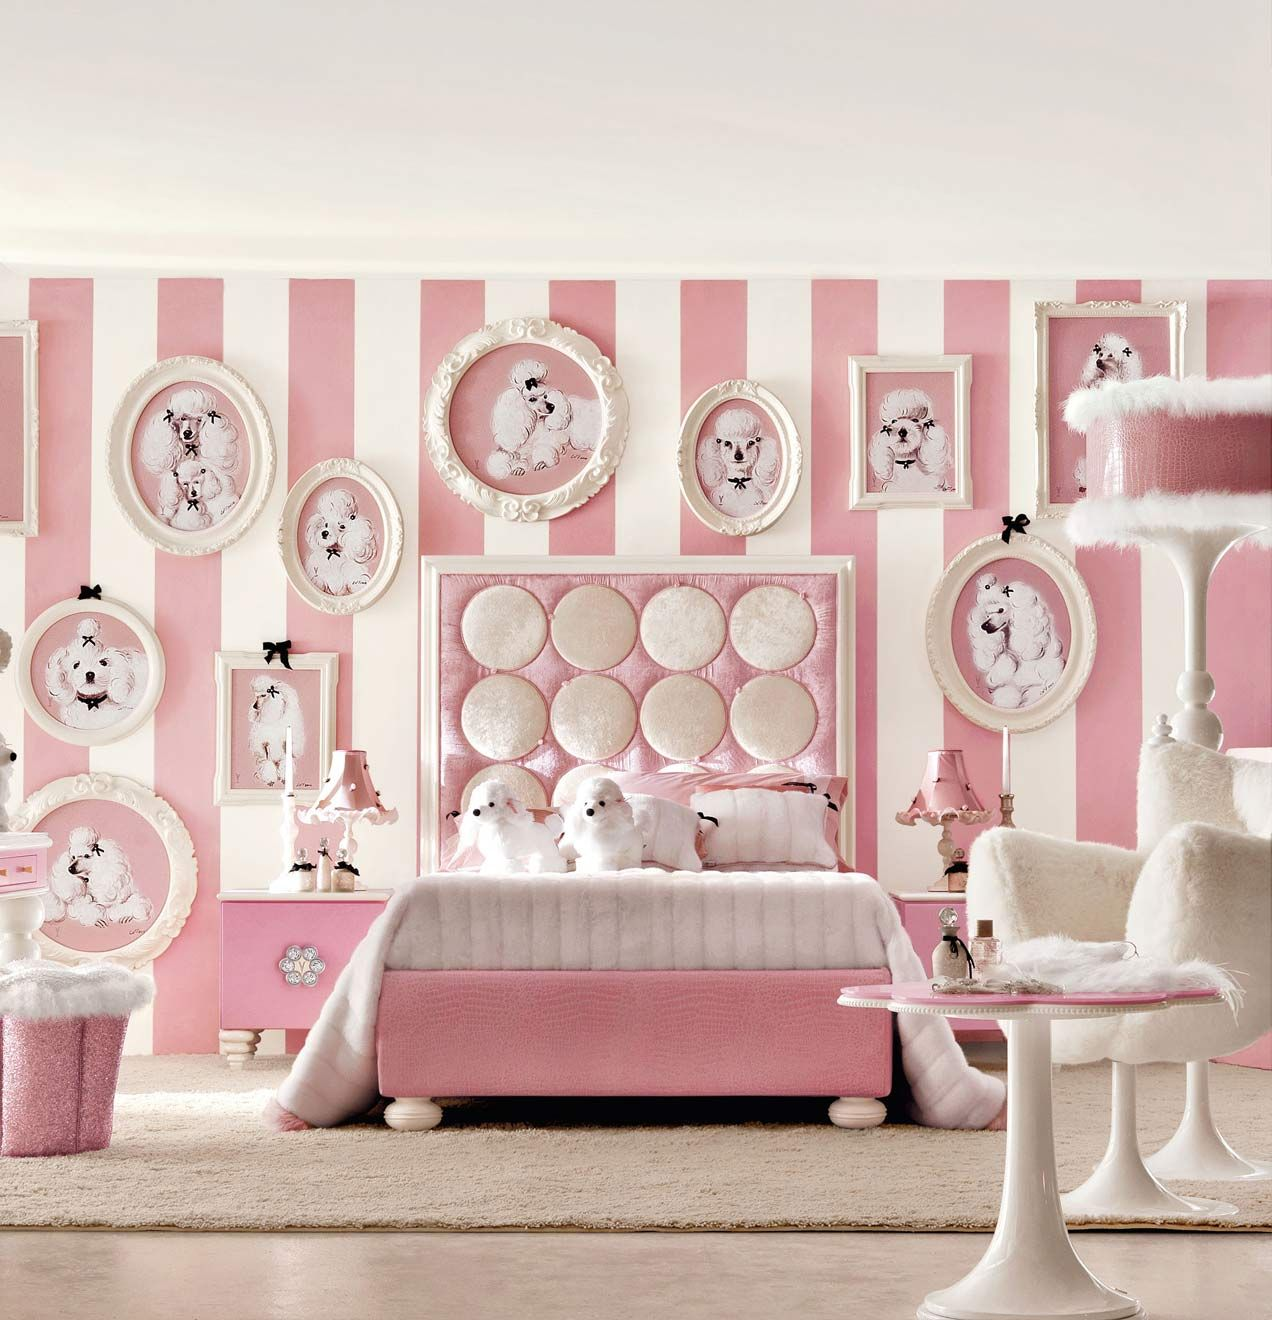 Girly Princess Bedroom Ideas: Princess Bedroom Decor Avanesova